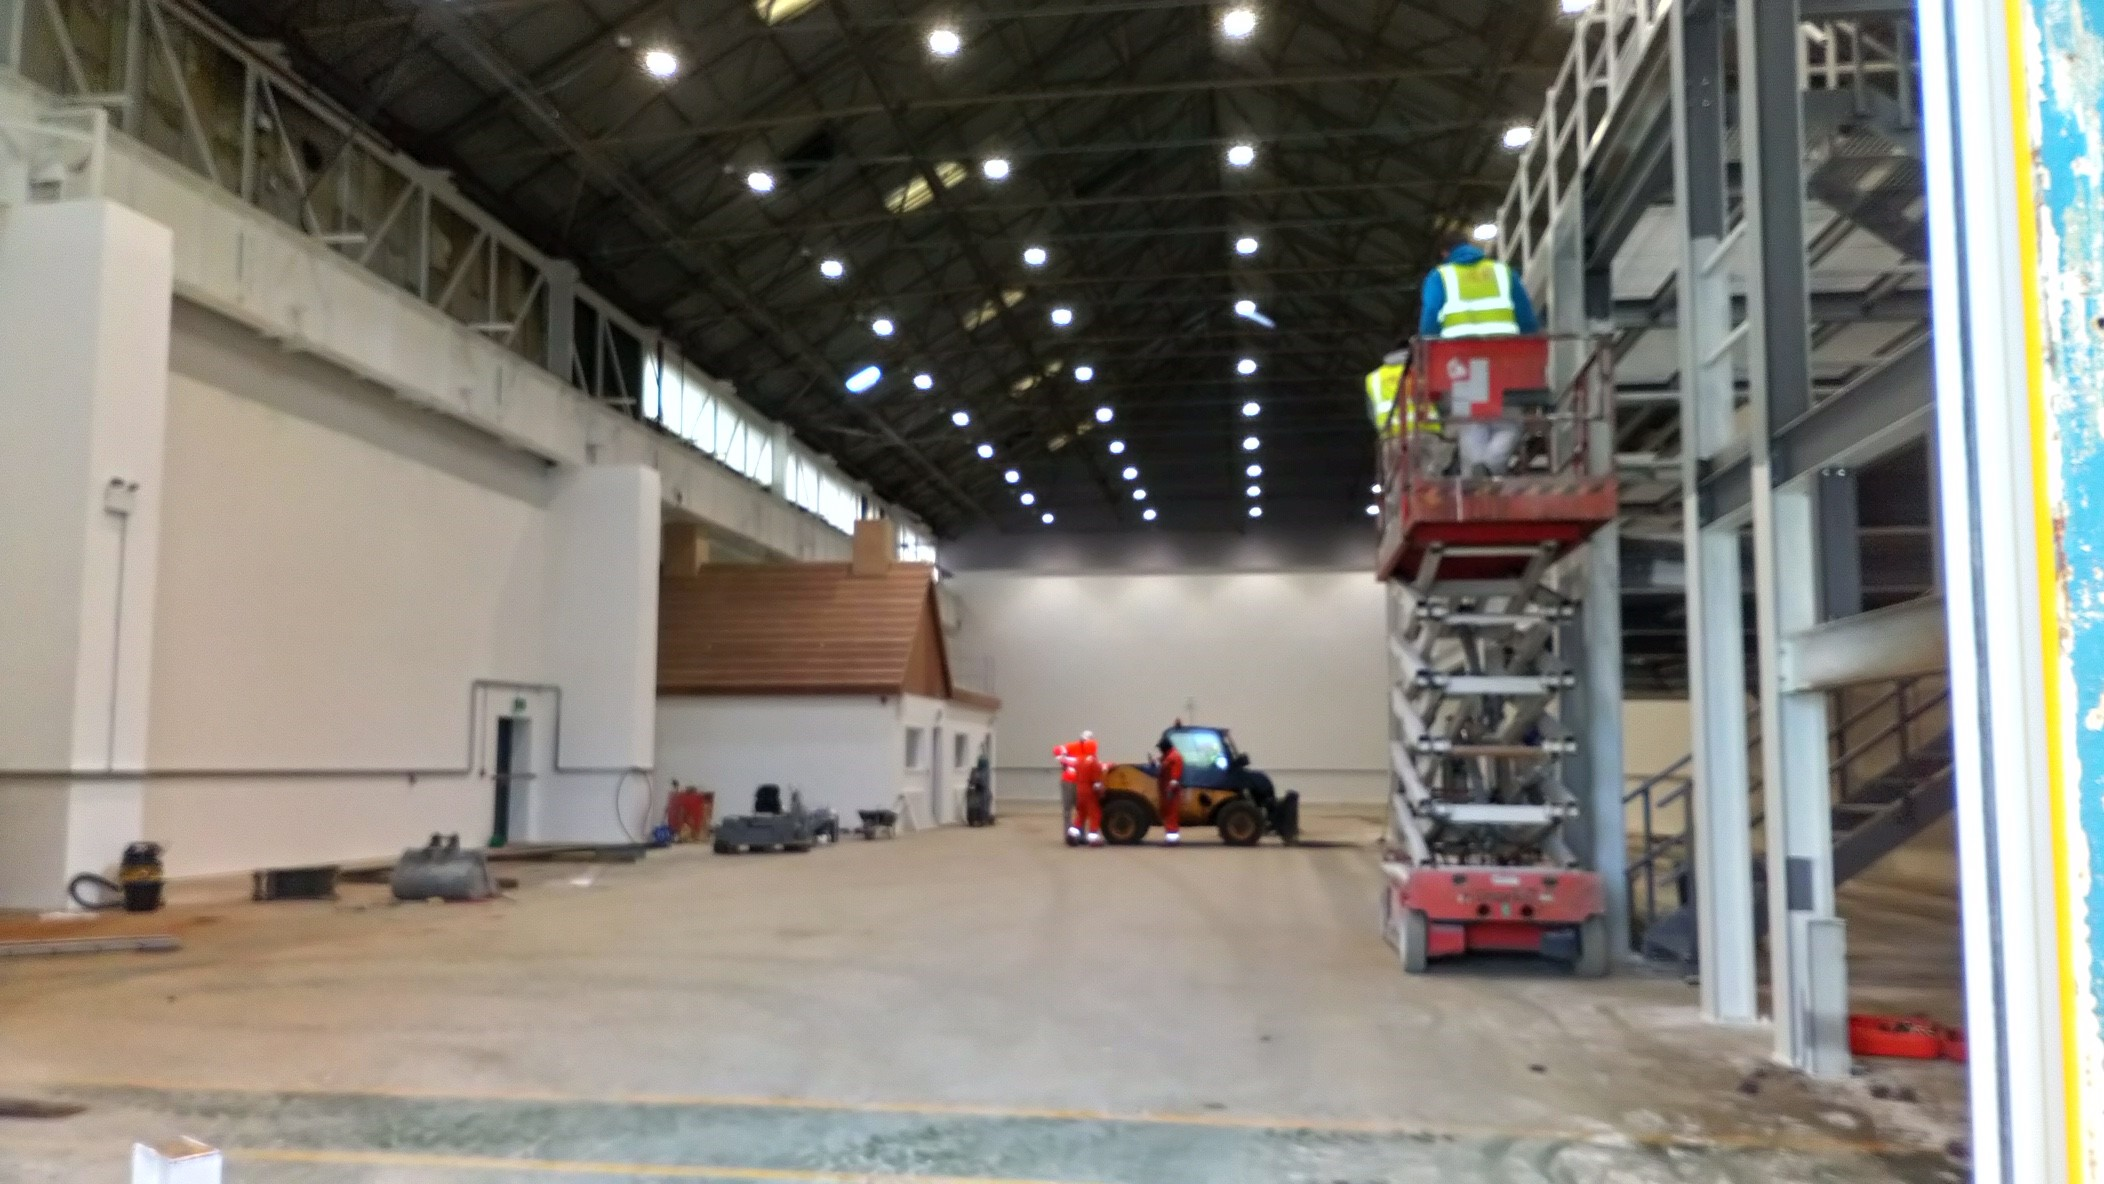 The Construction Wales Innovation Centre's new Scaffolding Academy on Swansea's Fabian Way has become the temporary home of staff facilities to support a field hospital as part of the response to the Covid-19 pandemic.